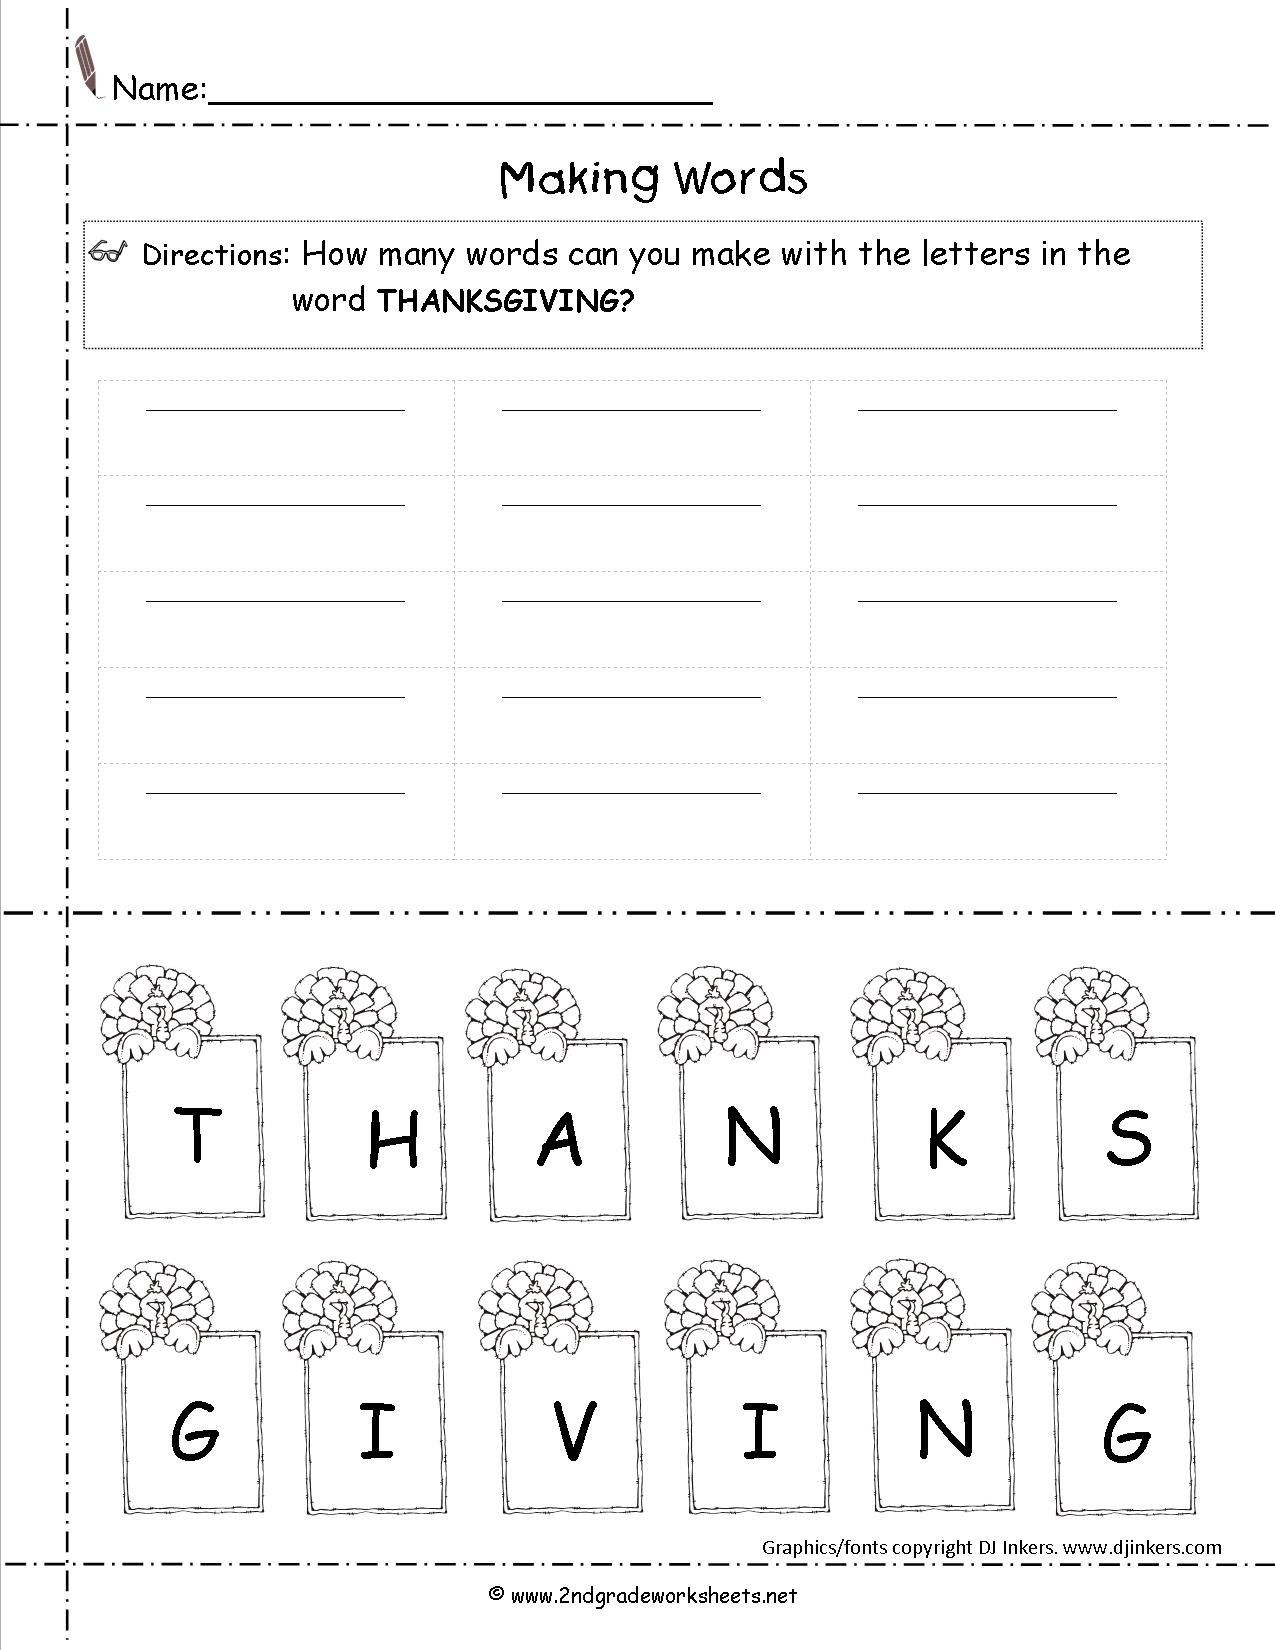 Printable Thanksgiving Crafts and Activities for Kids   Thanksgiving  worksheets [ 1650 x 1275 Pixel ]